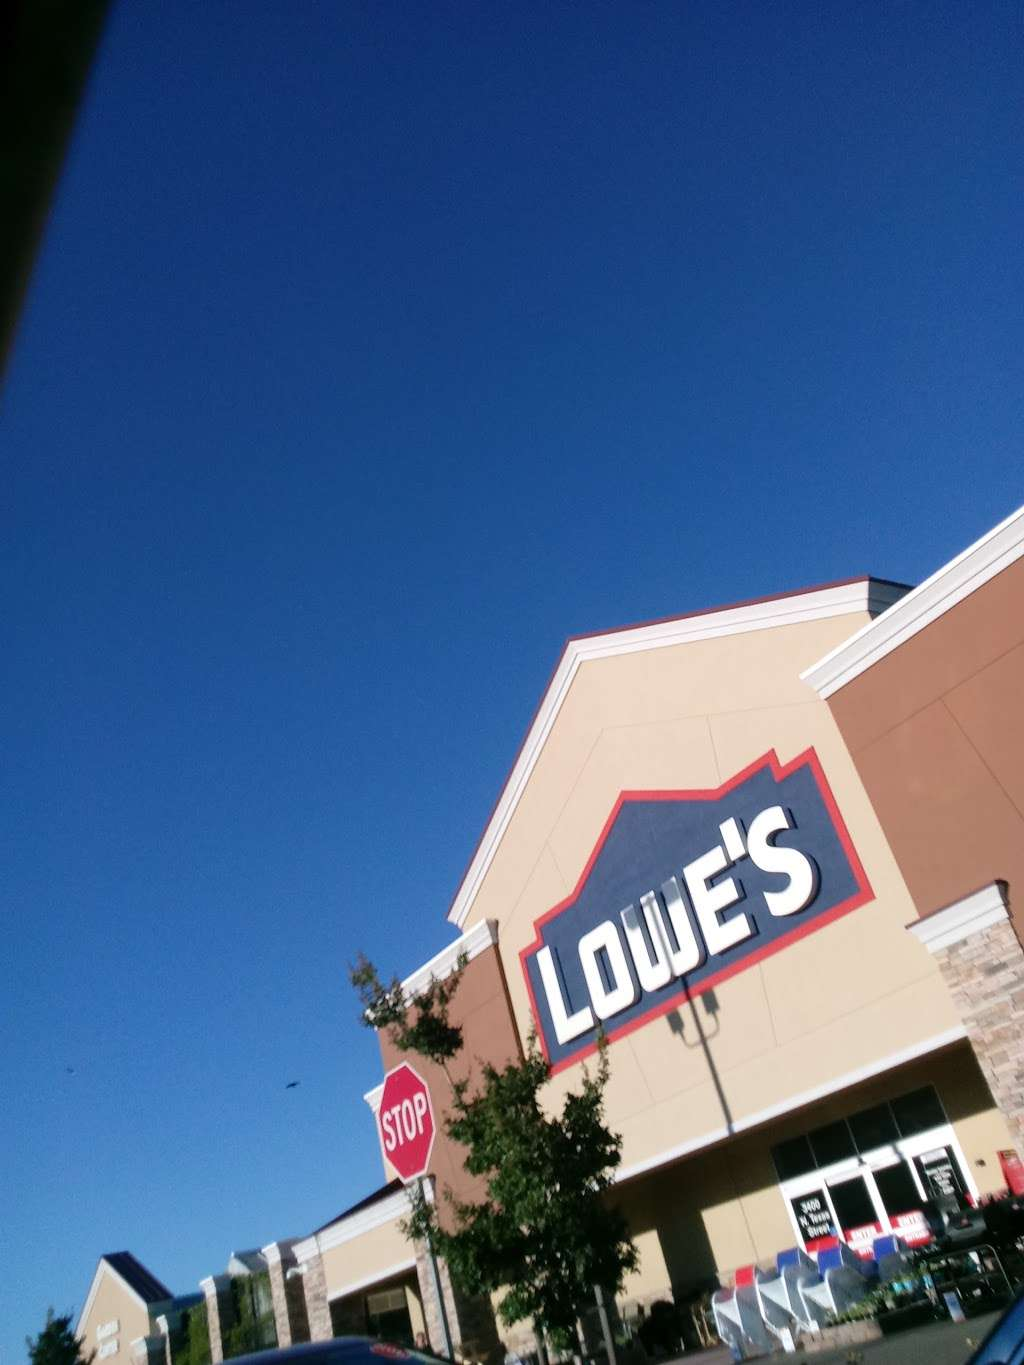 Lowes Home Improvement - hardware store  | Photo 4 of 10 | Address: 3400 N Texas St, Fairfield, CA 94533, USA | Phone: (707) 207-2070